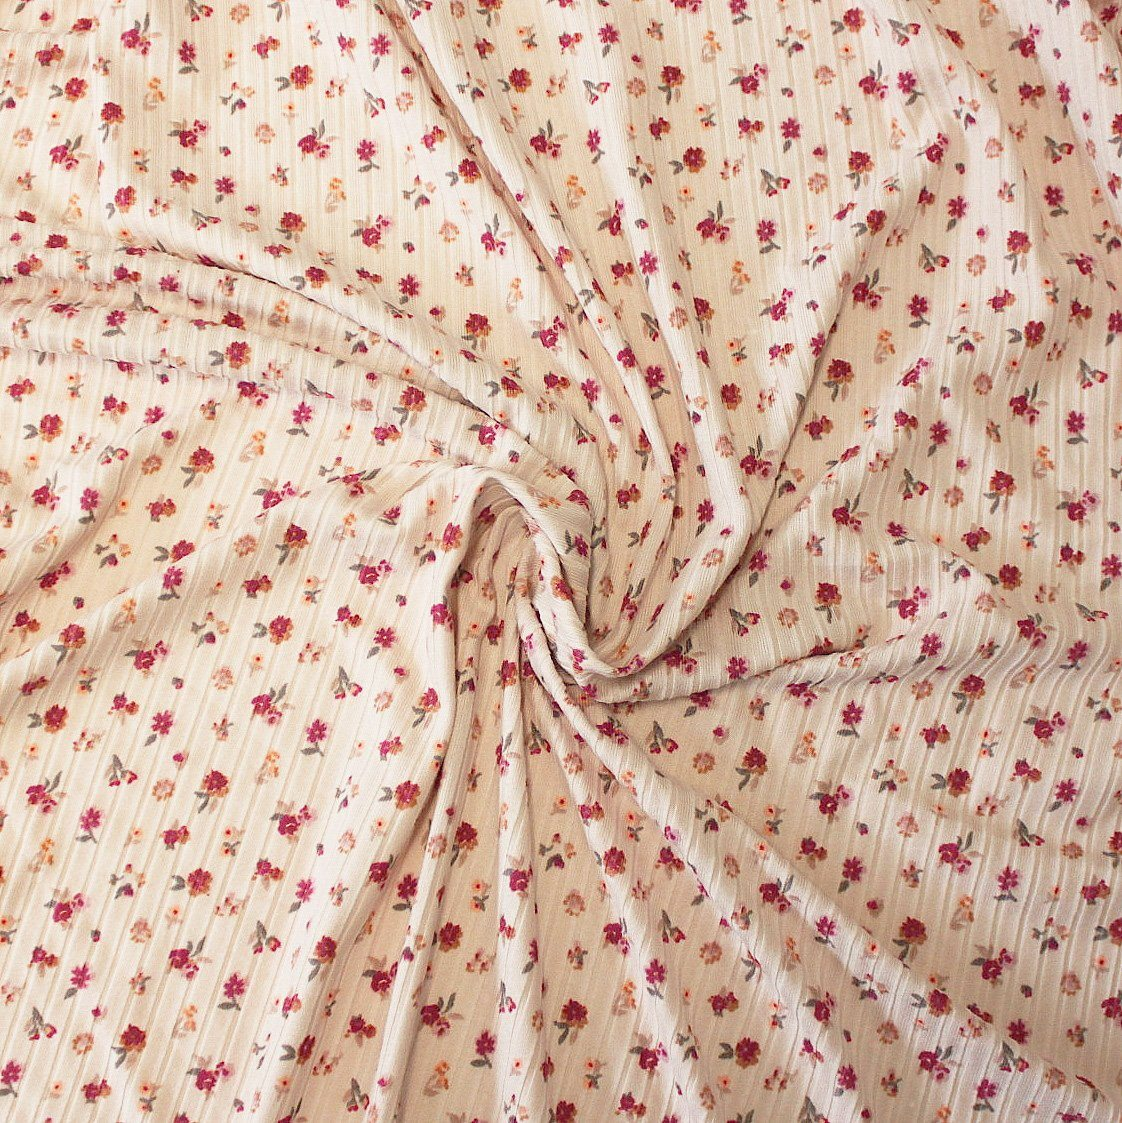 Pale Pink Burgundy and Taupe Small Floral Print Poly Spandex 4 Way Stretch 8x3 Rib Knit - Raspberry Creek Fabrics